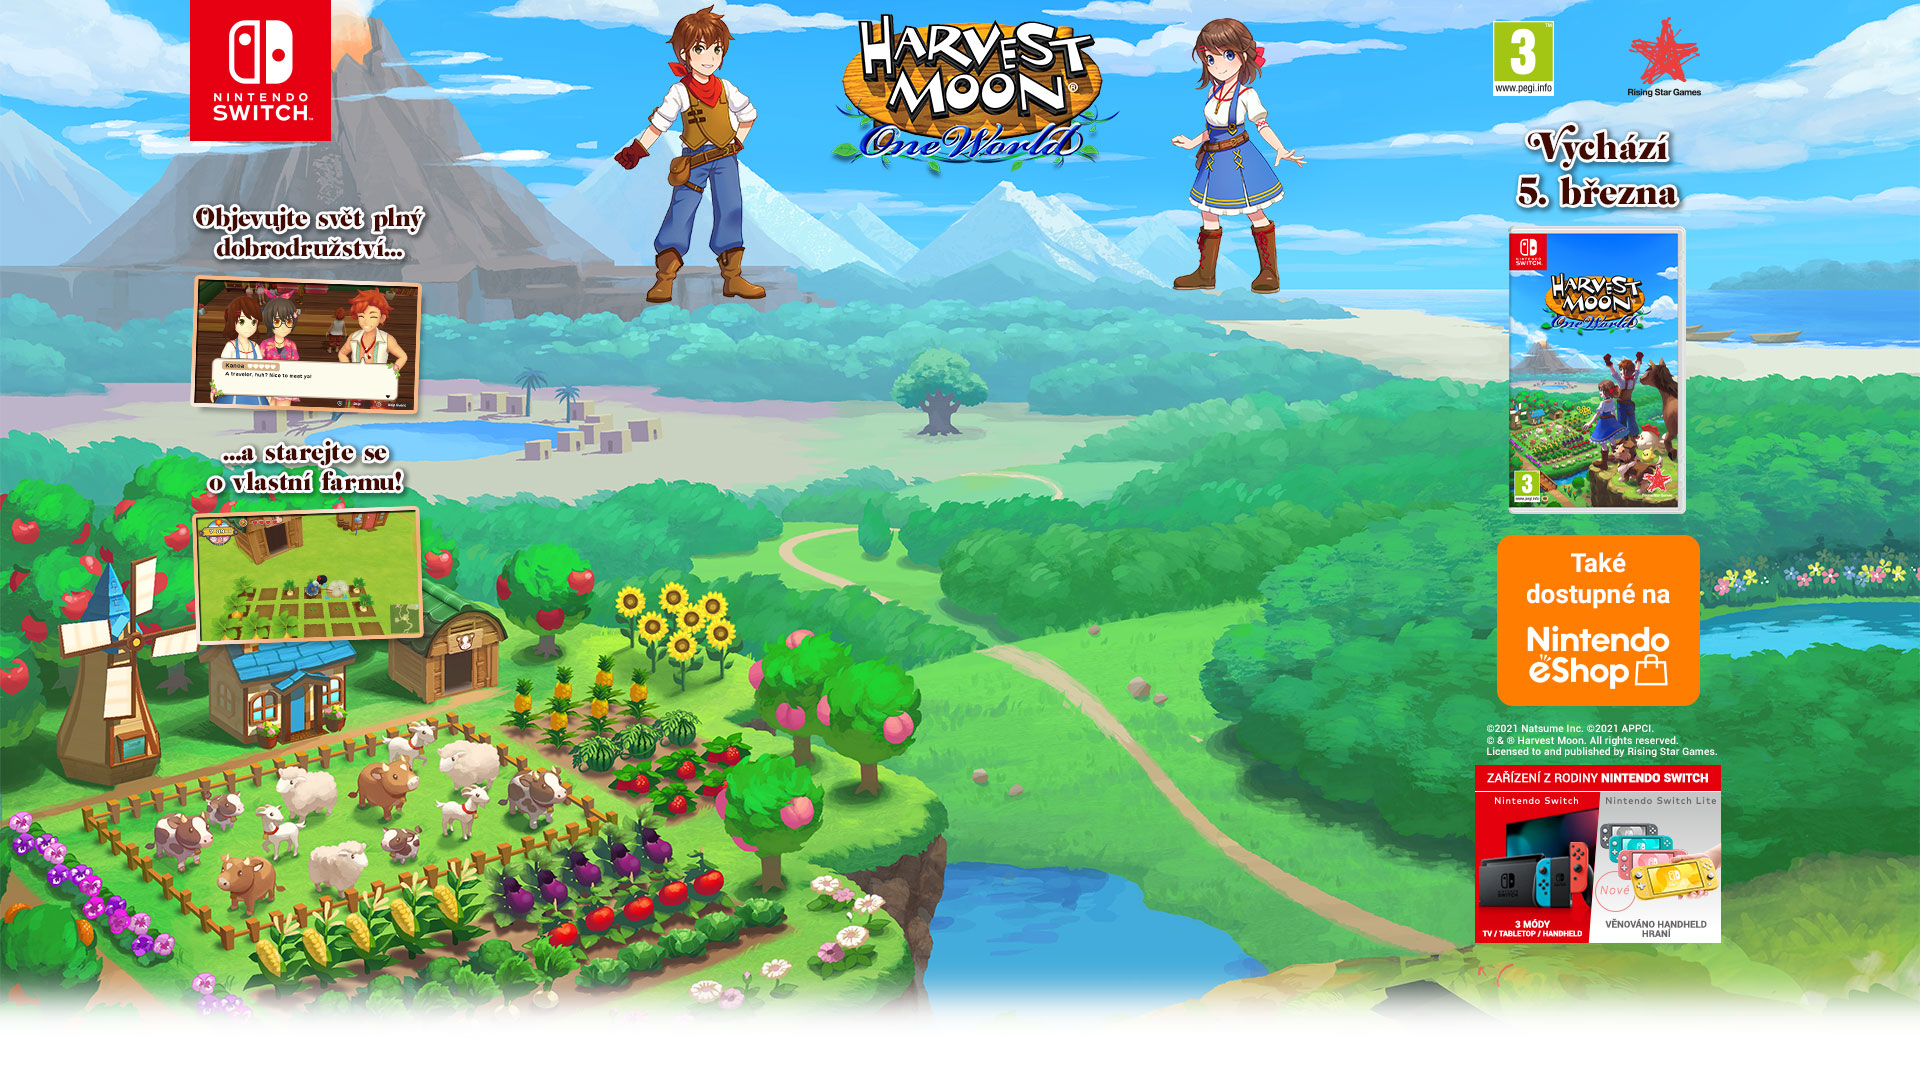 NINTENDOSHOP SWITCH Harvest Moon: One World